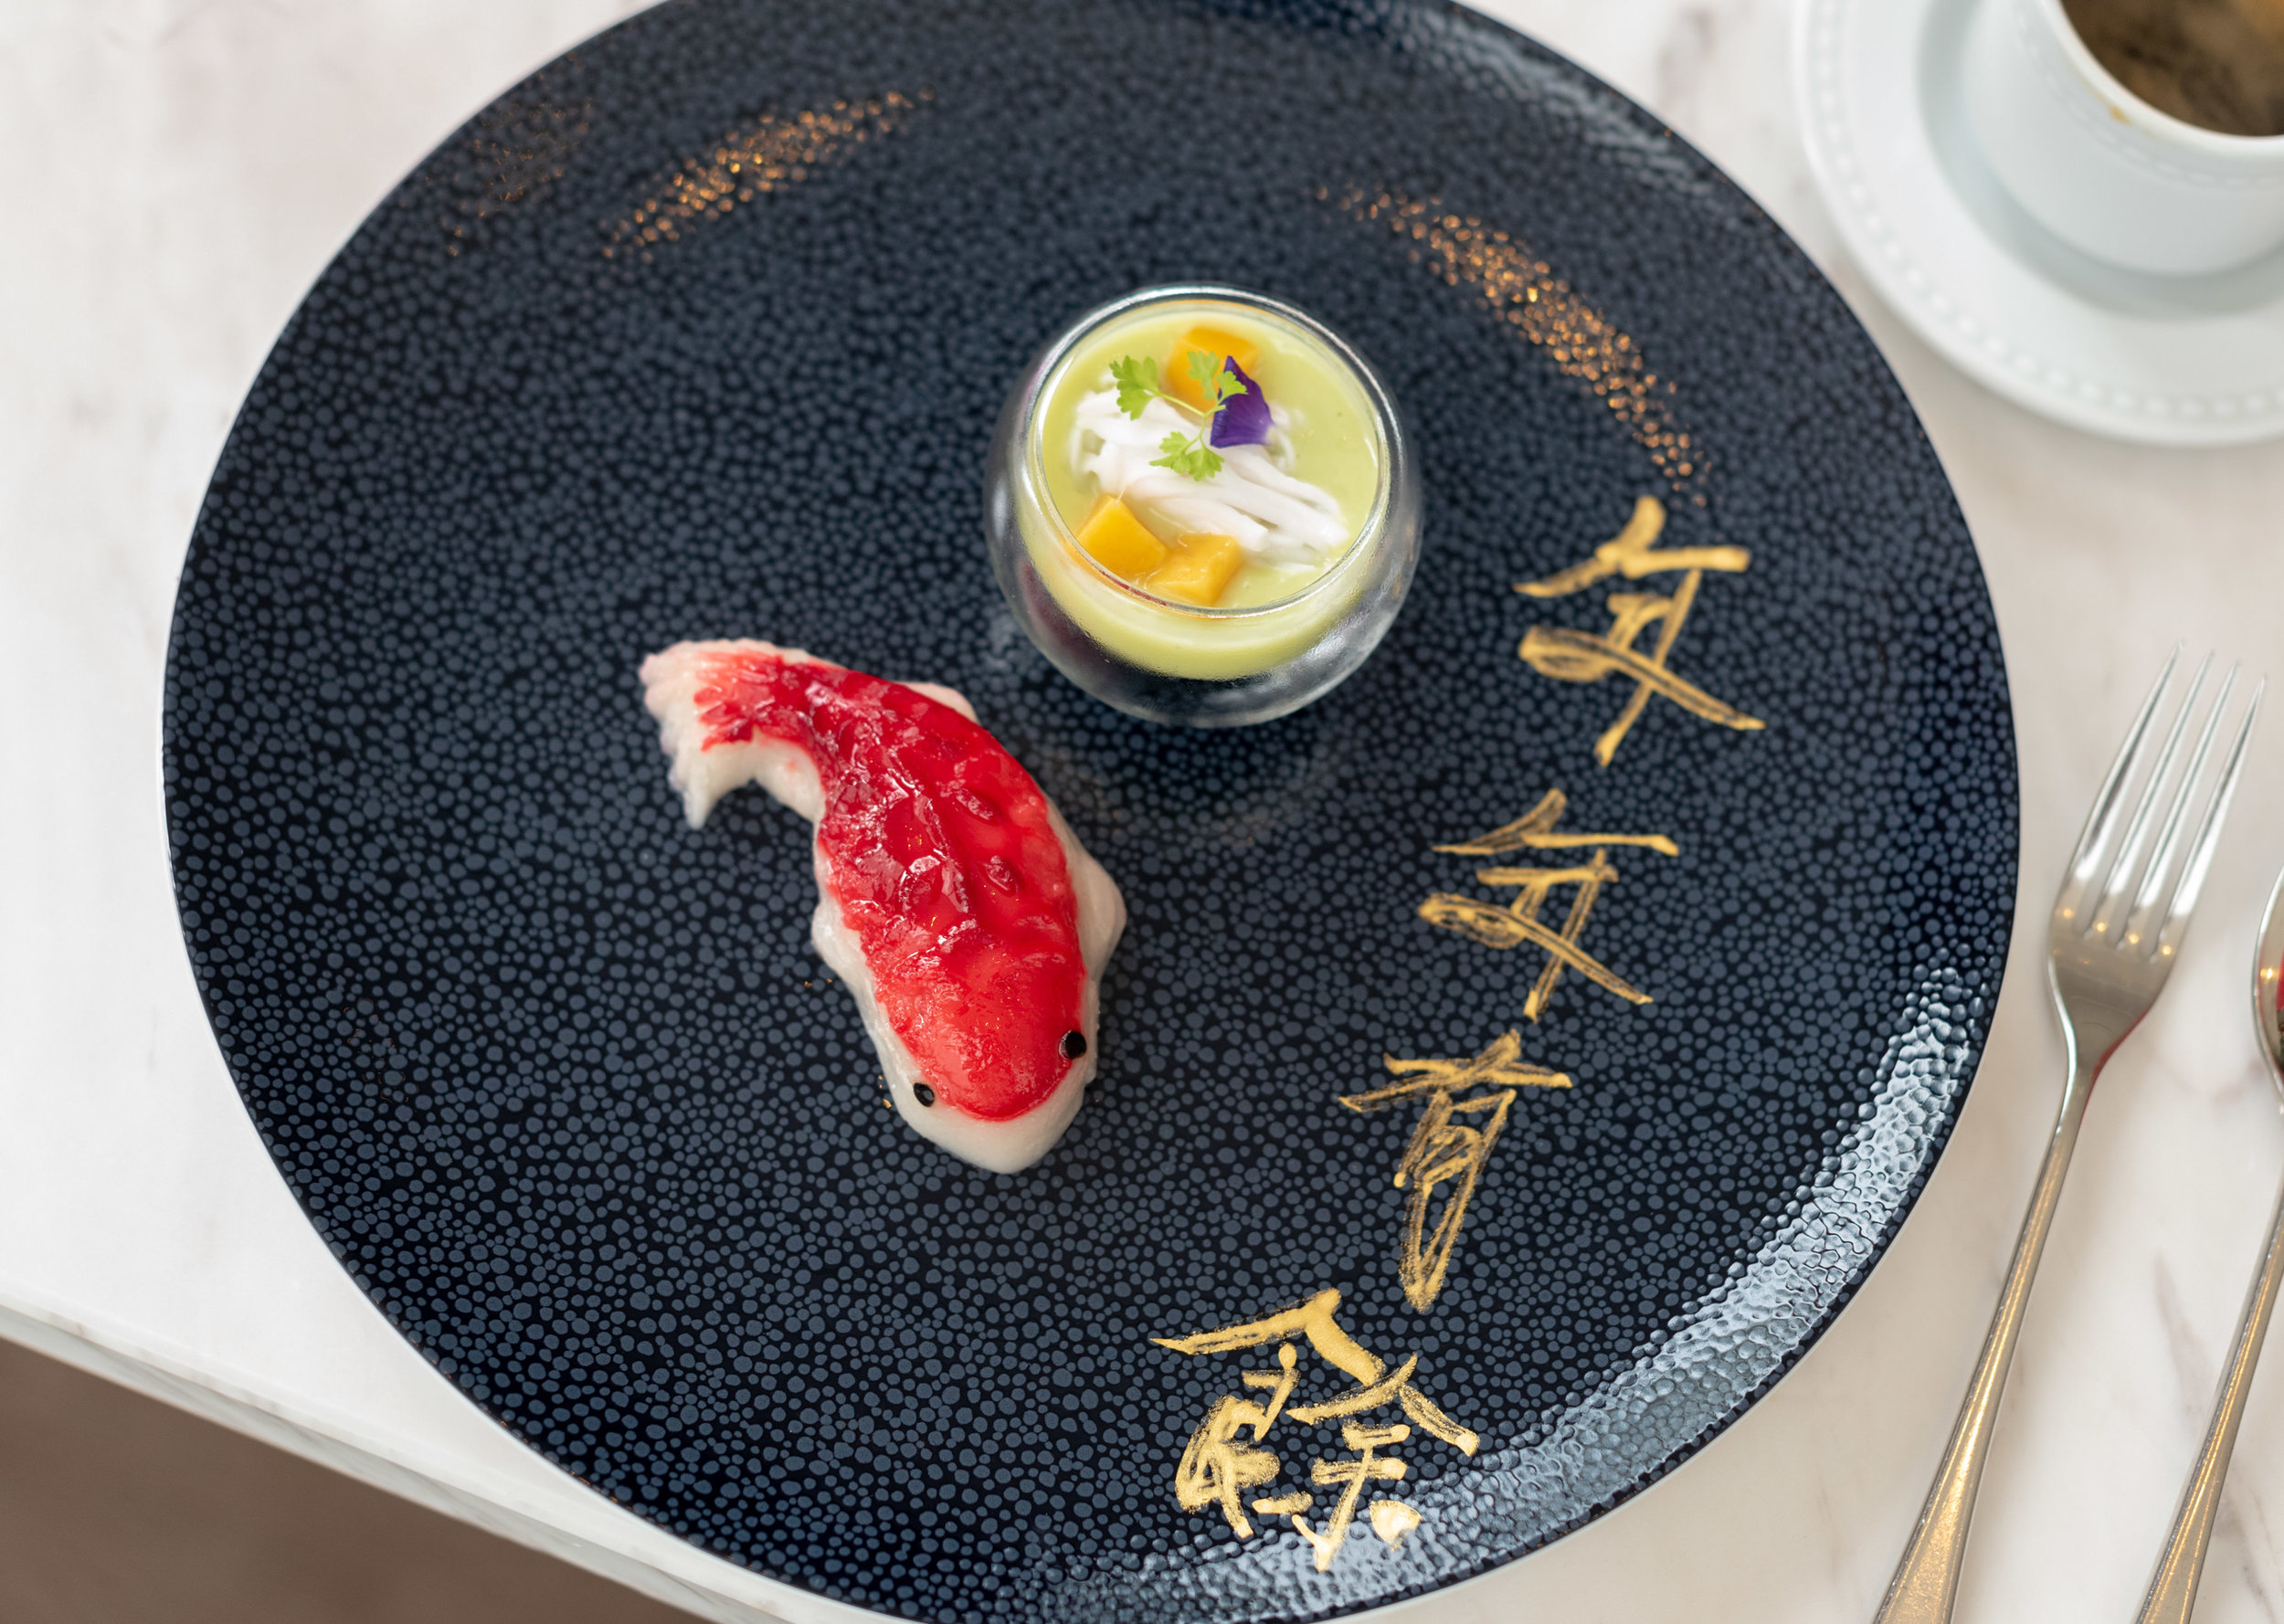 Chilled Avocado with Shredded Coconut and Steamed Koi Fish Nian Gao  Racines - Sofitel Singapore City Centre